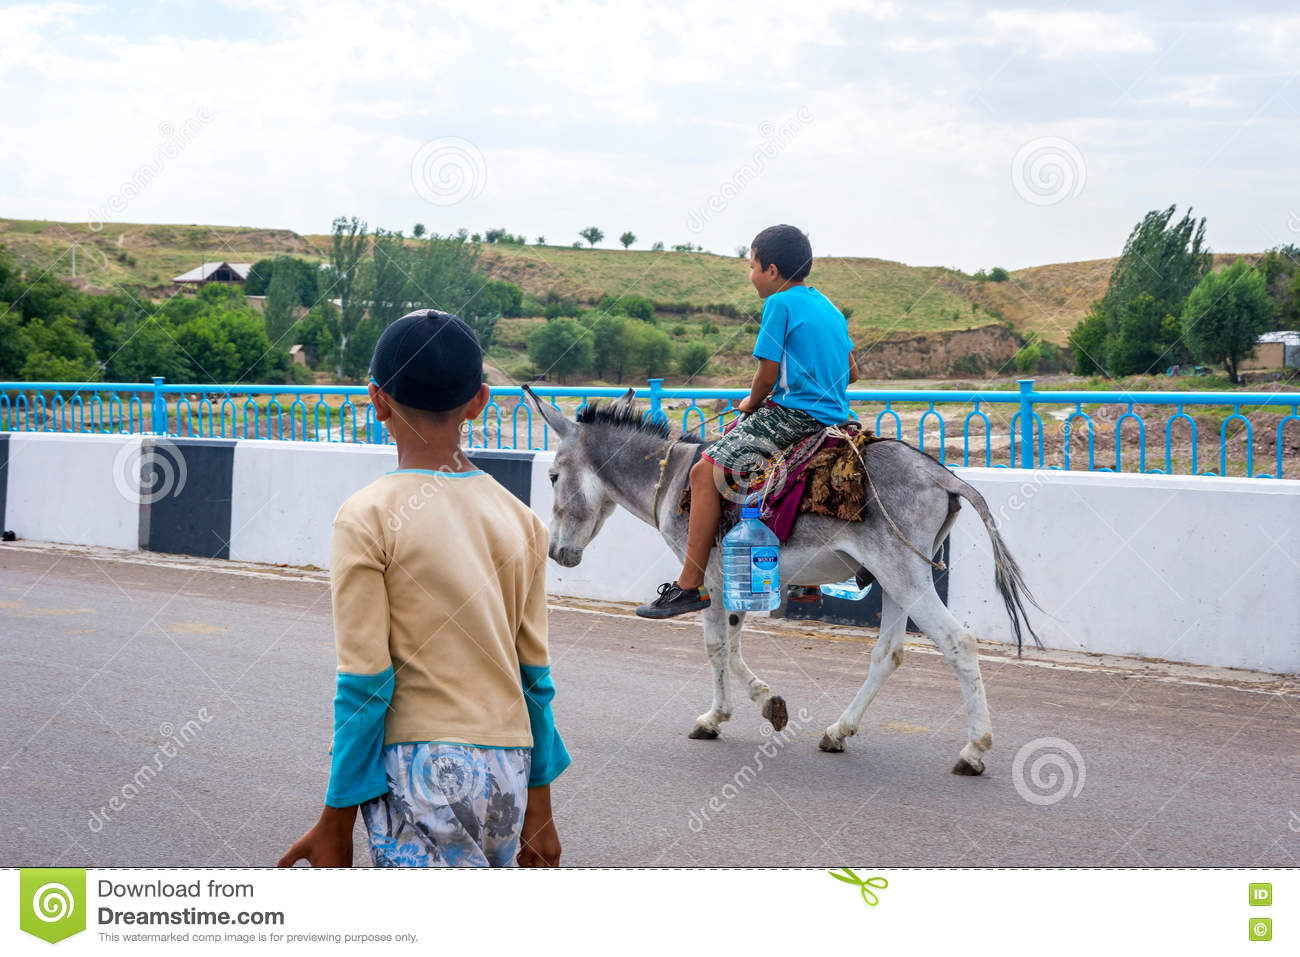 kids-carrying-water-bottles-donkey-turba